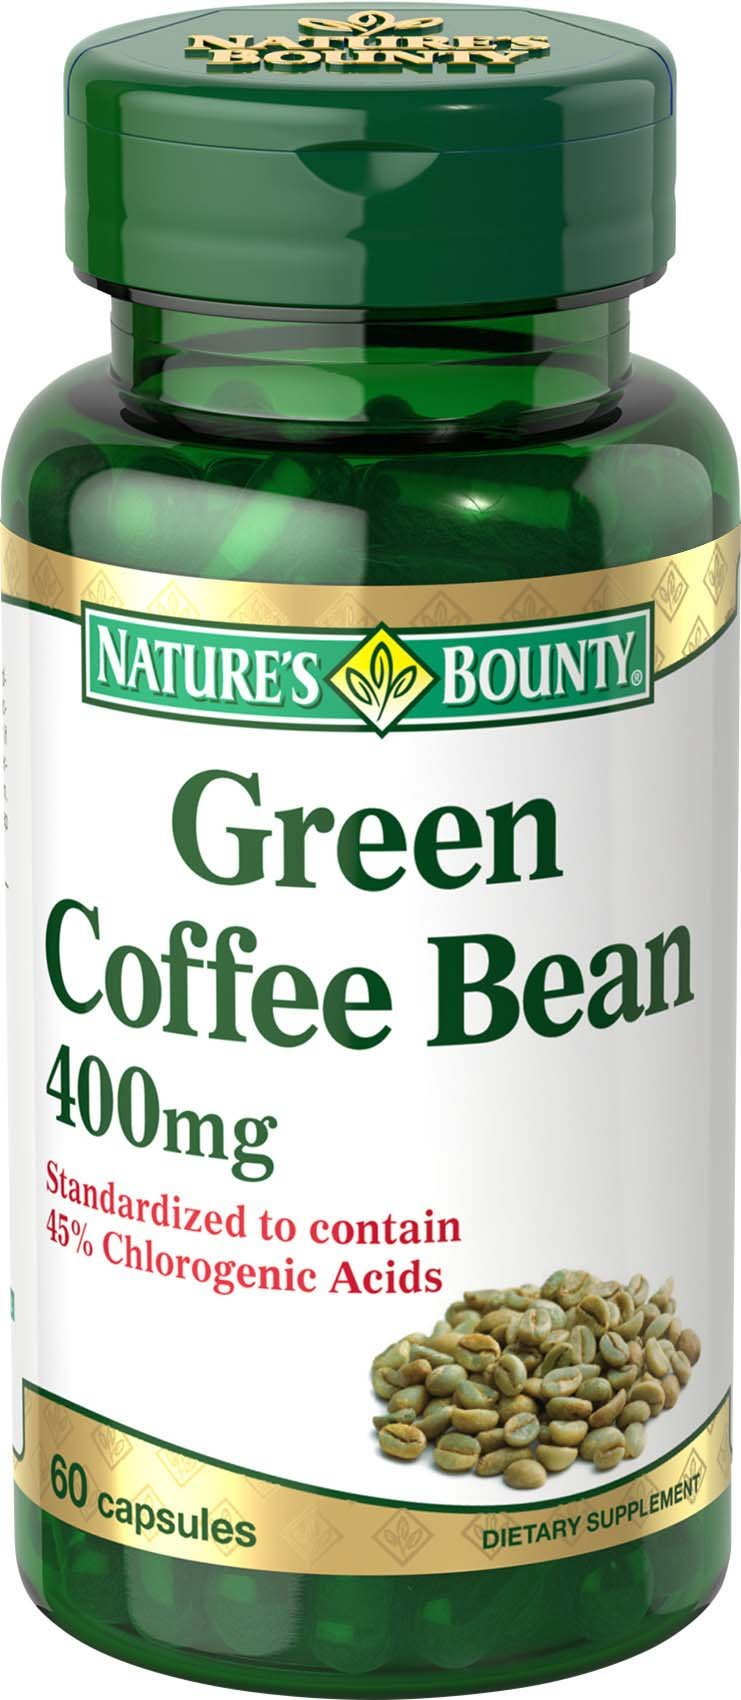 Nature's Bounty Green Coffee Bean 400 mg, 60 Capsules by Nature's Bounty